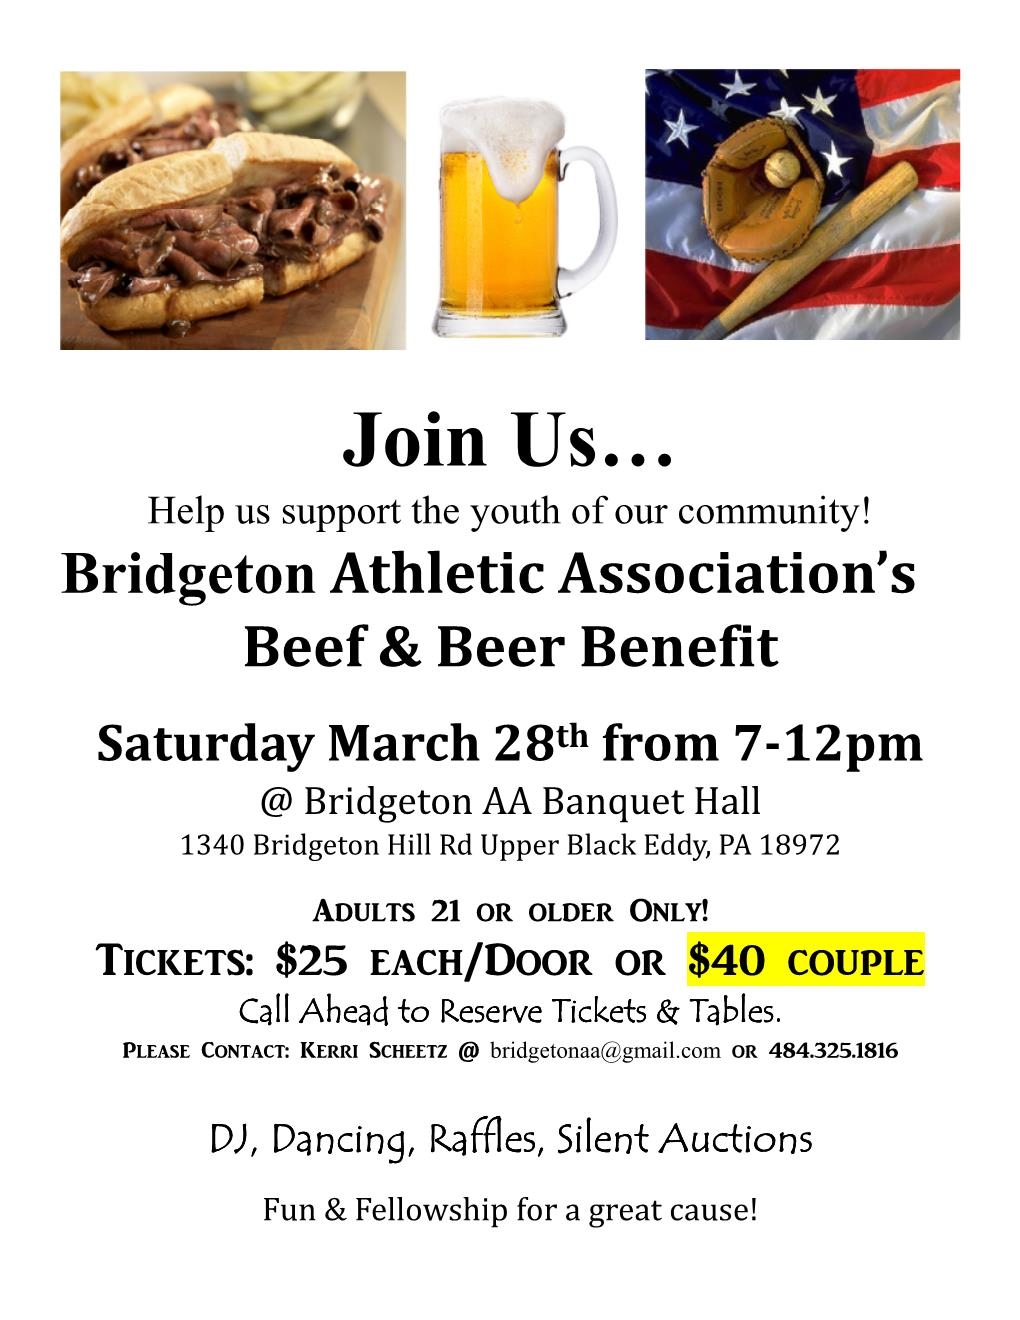 Bridgeton Athletic Association Fundraiser | Bridgeton Township